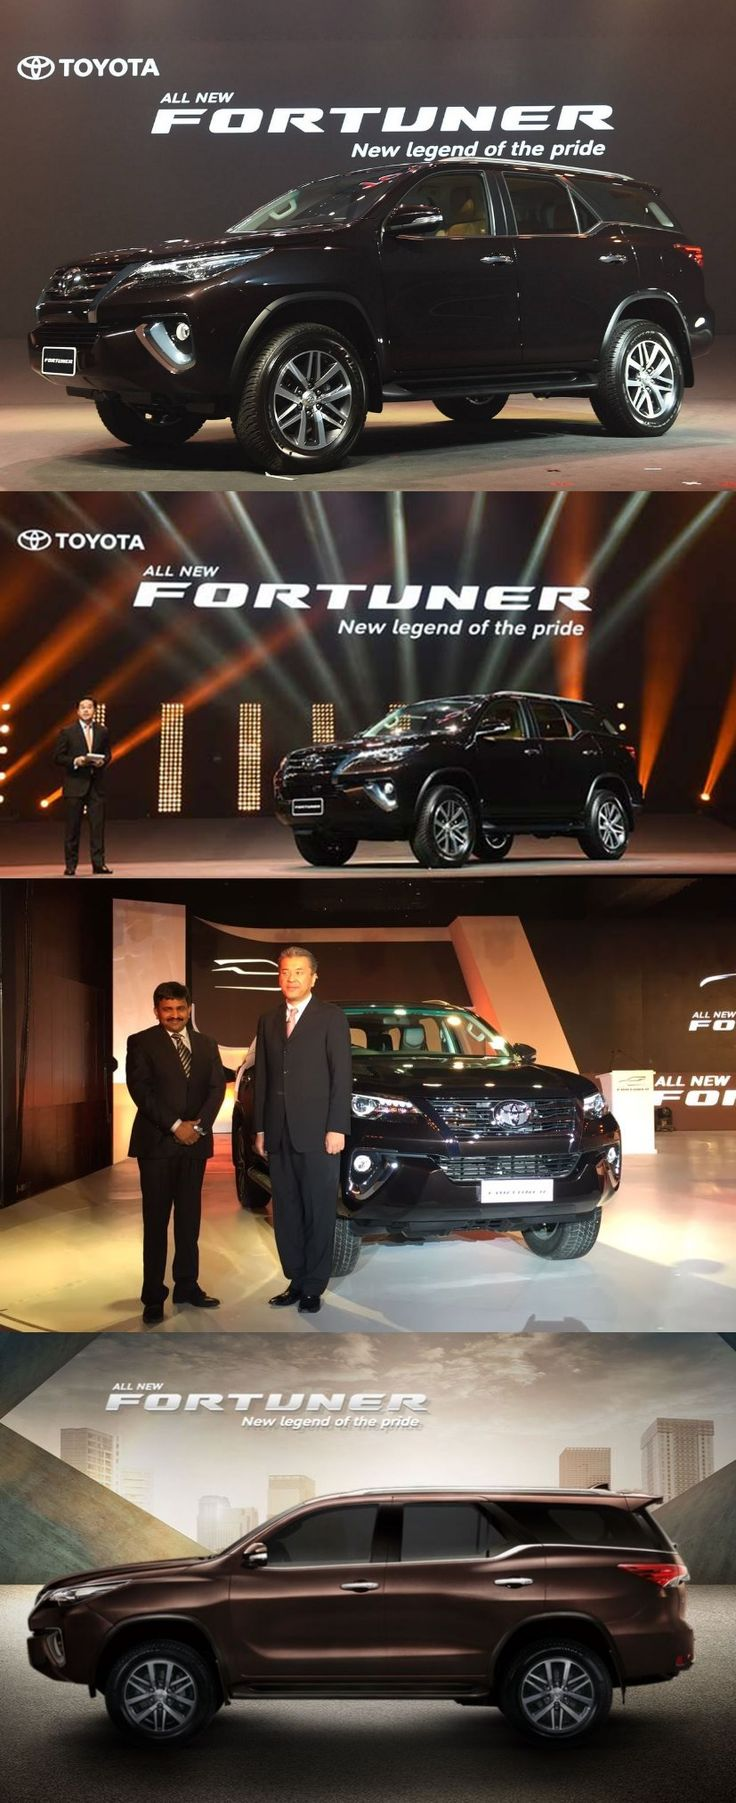 All-New 2016 Toyota Fortuner Launched in India, Starting at INR 25.92 Lakh